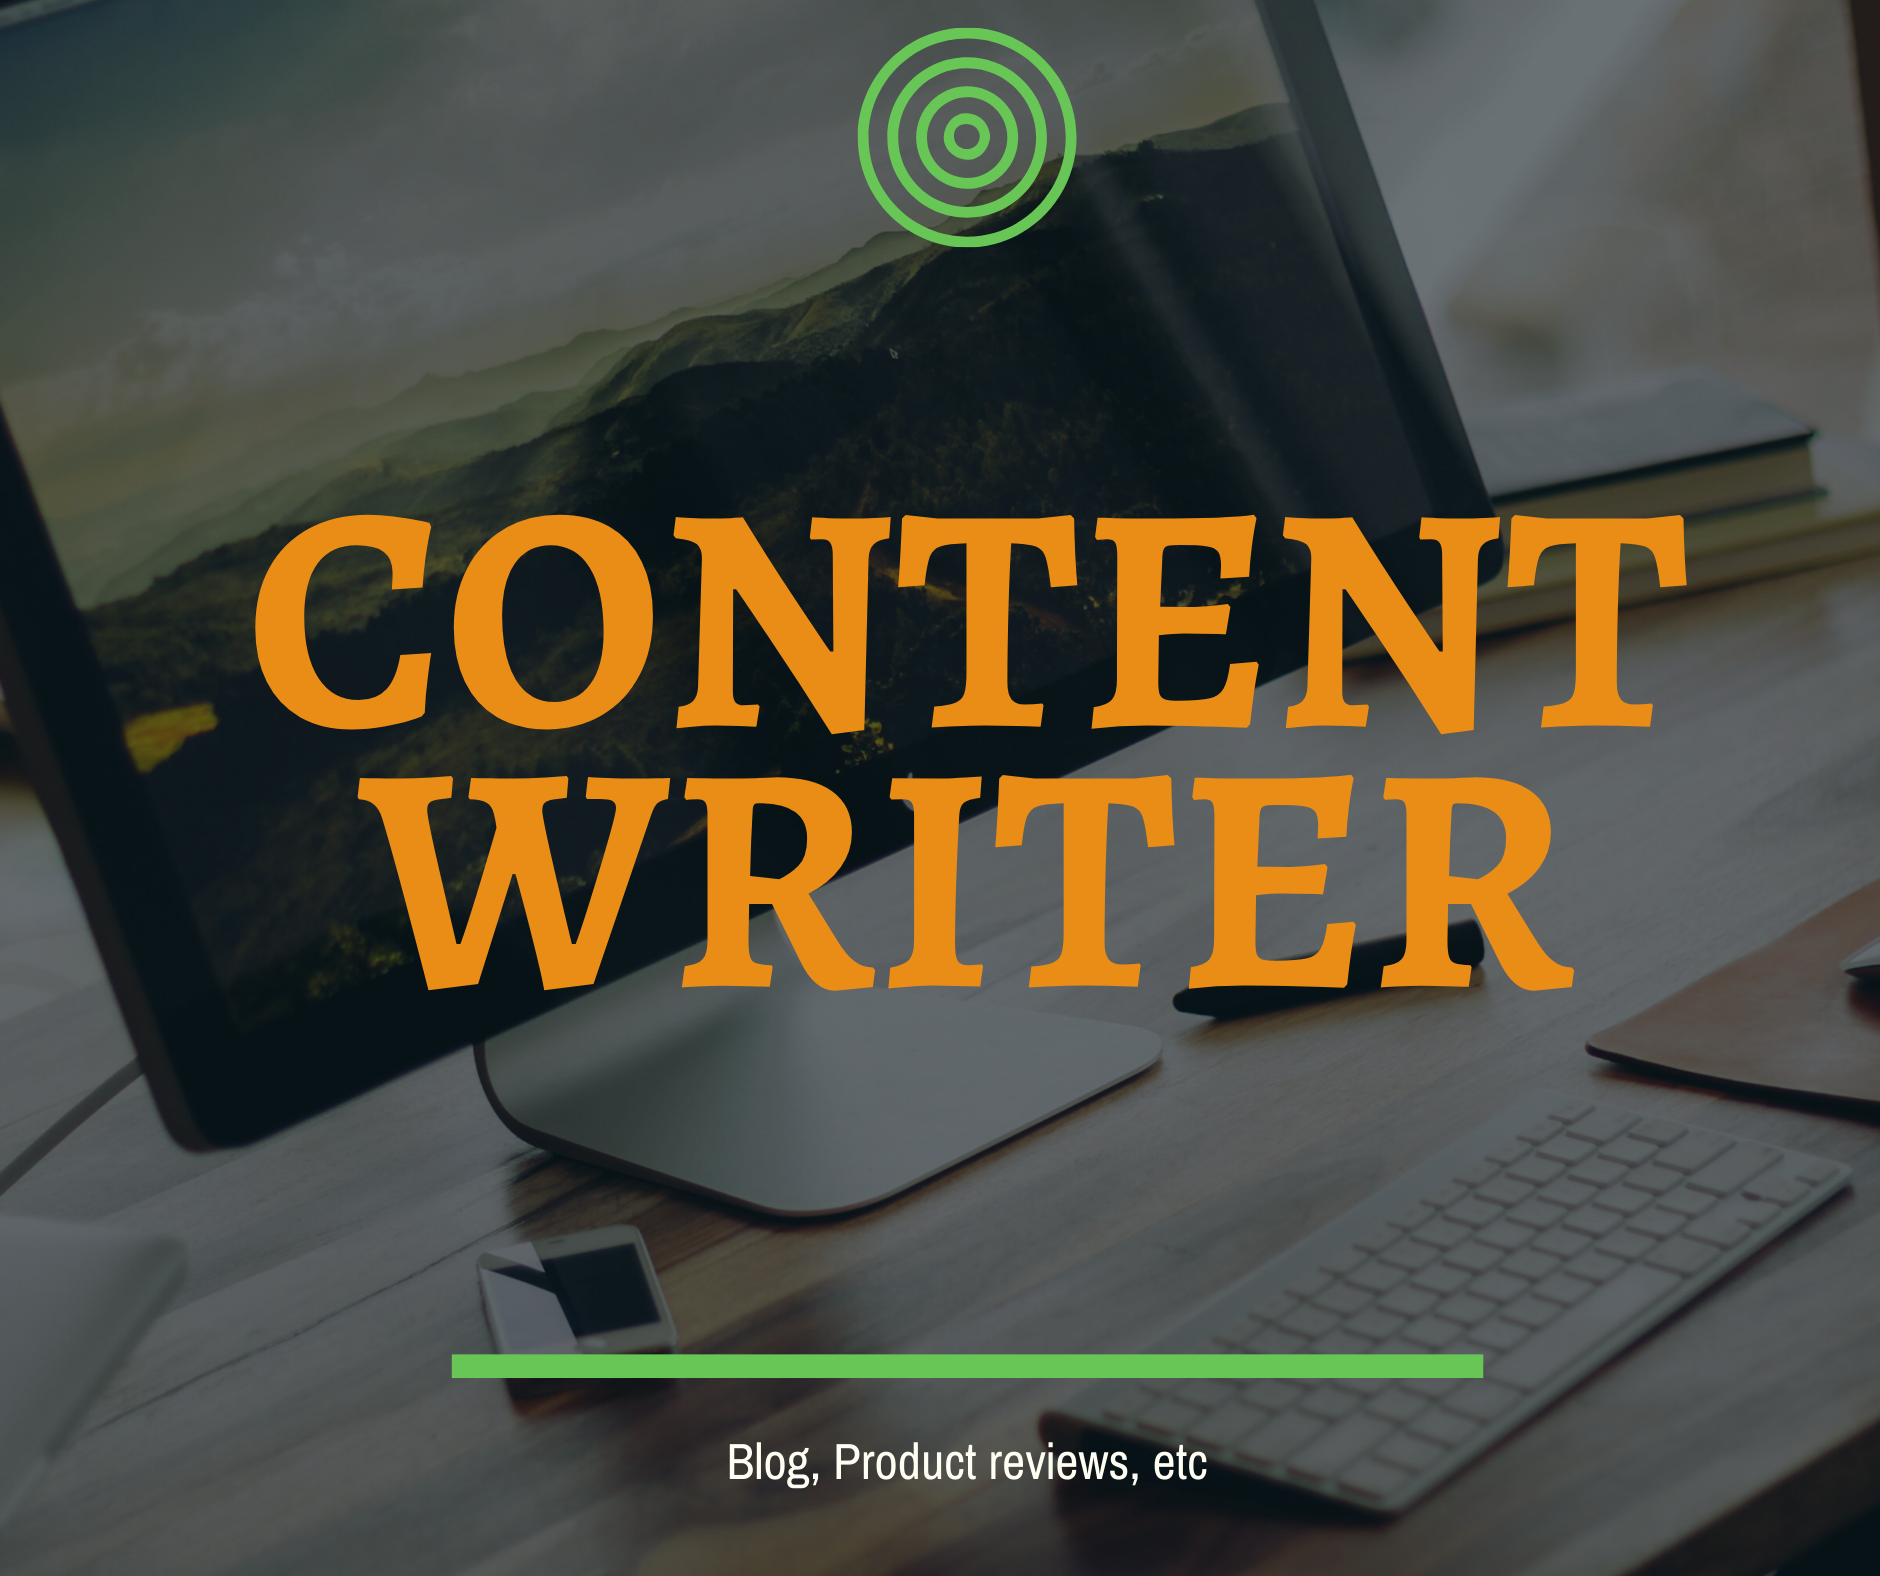 Experienced Writer That Will Do Blogging and Product Reviews